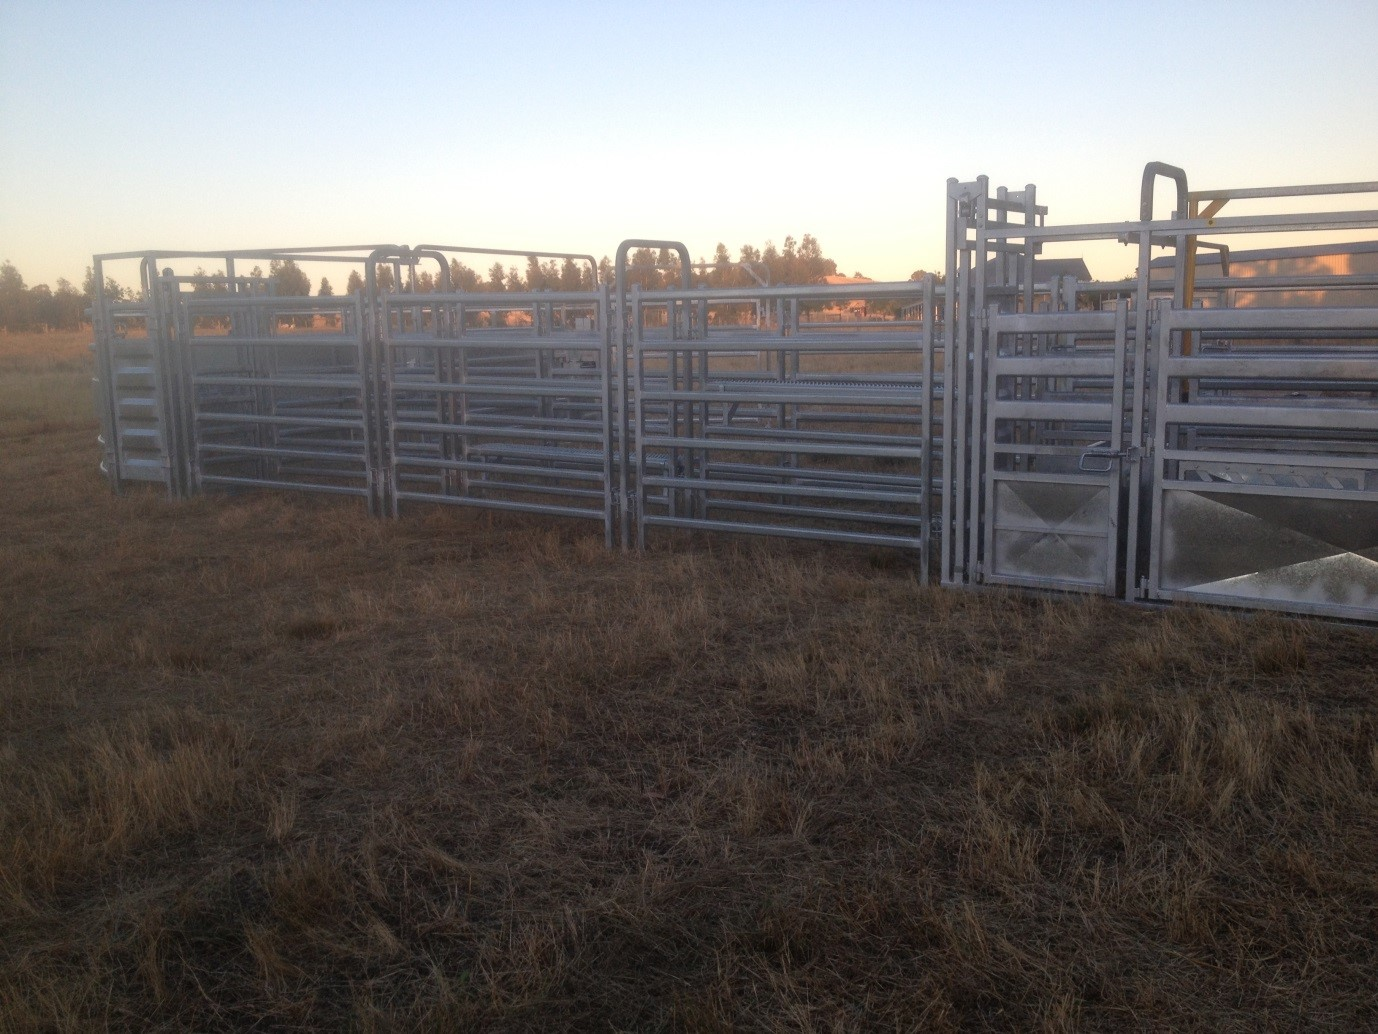 Senturion-Steel-Supplies-Adams-Crossing-Cattle-Yards-05